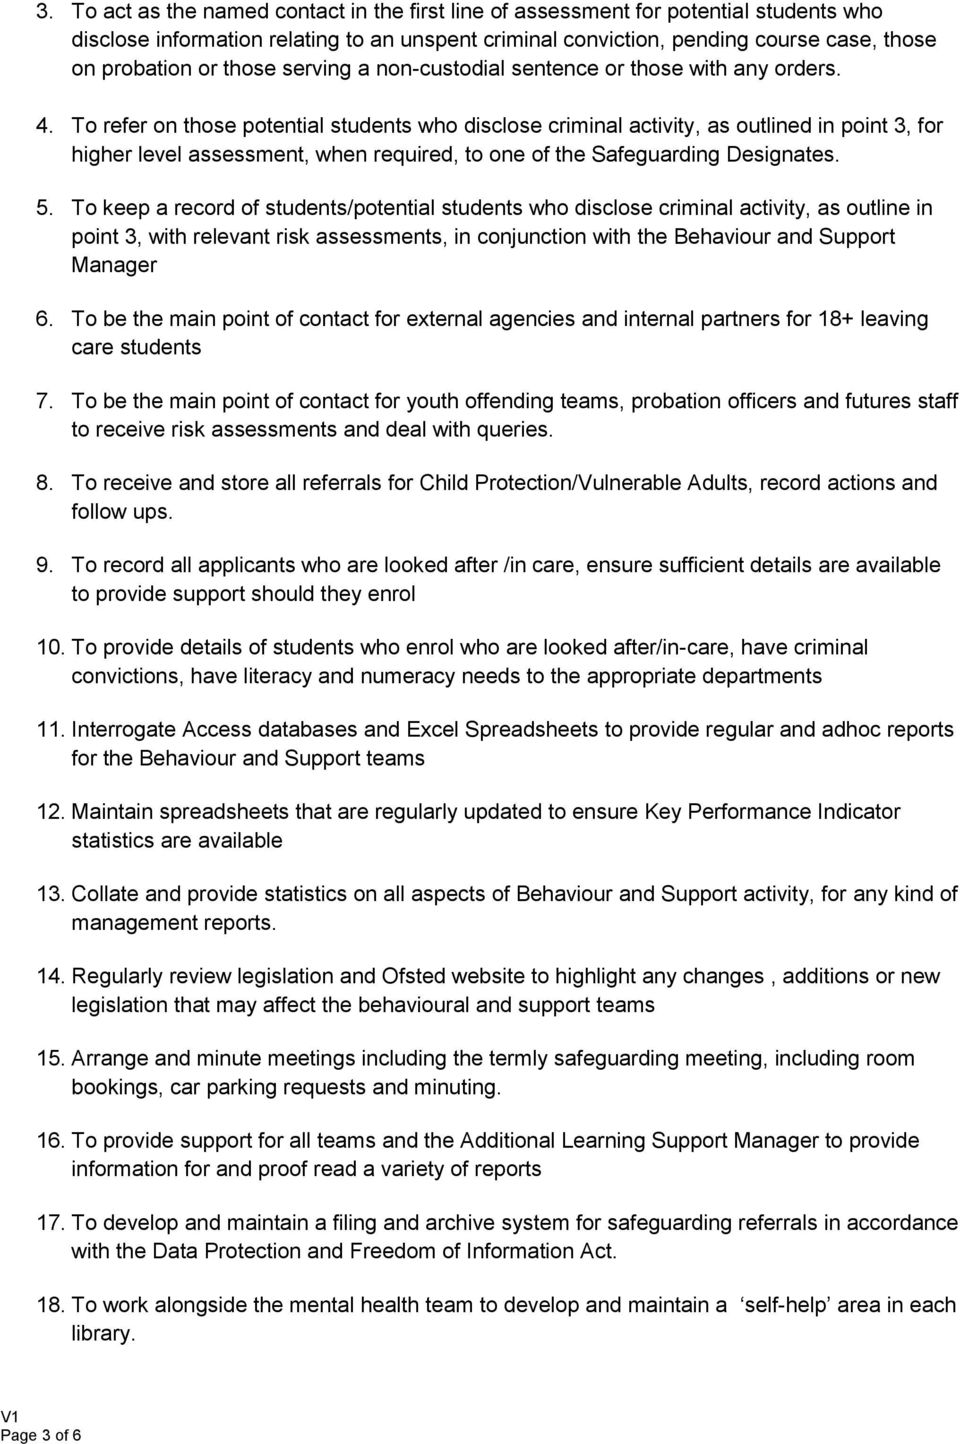 To refer on those potential students who disclose criminal activity, as outlined in point 3, for higher level assessment, when required, to one of the Safeguarding Designates. 5.